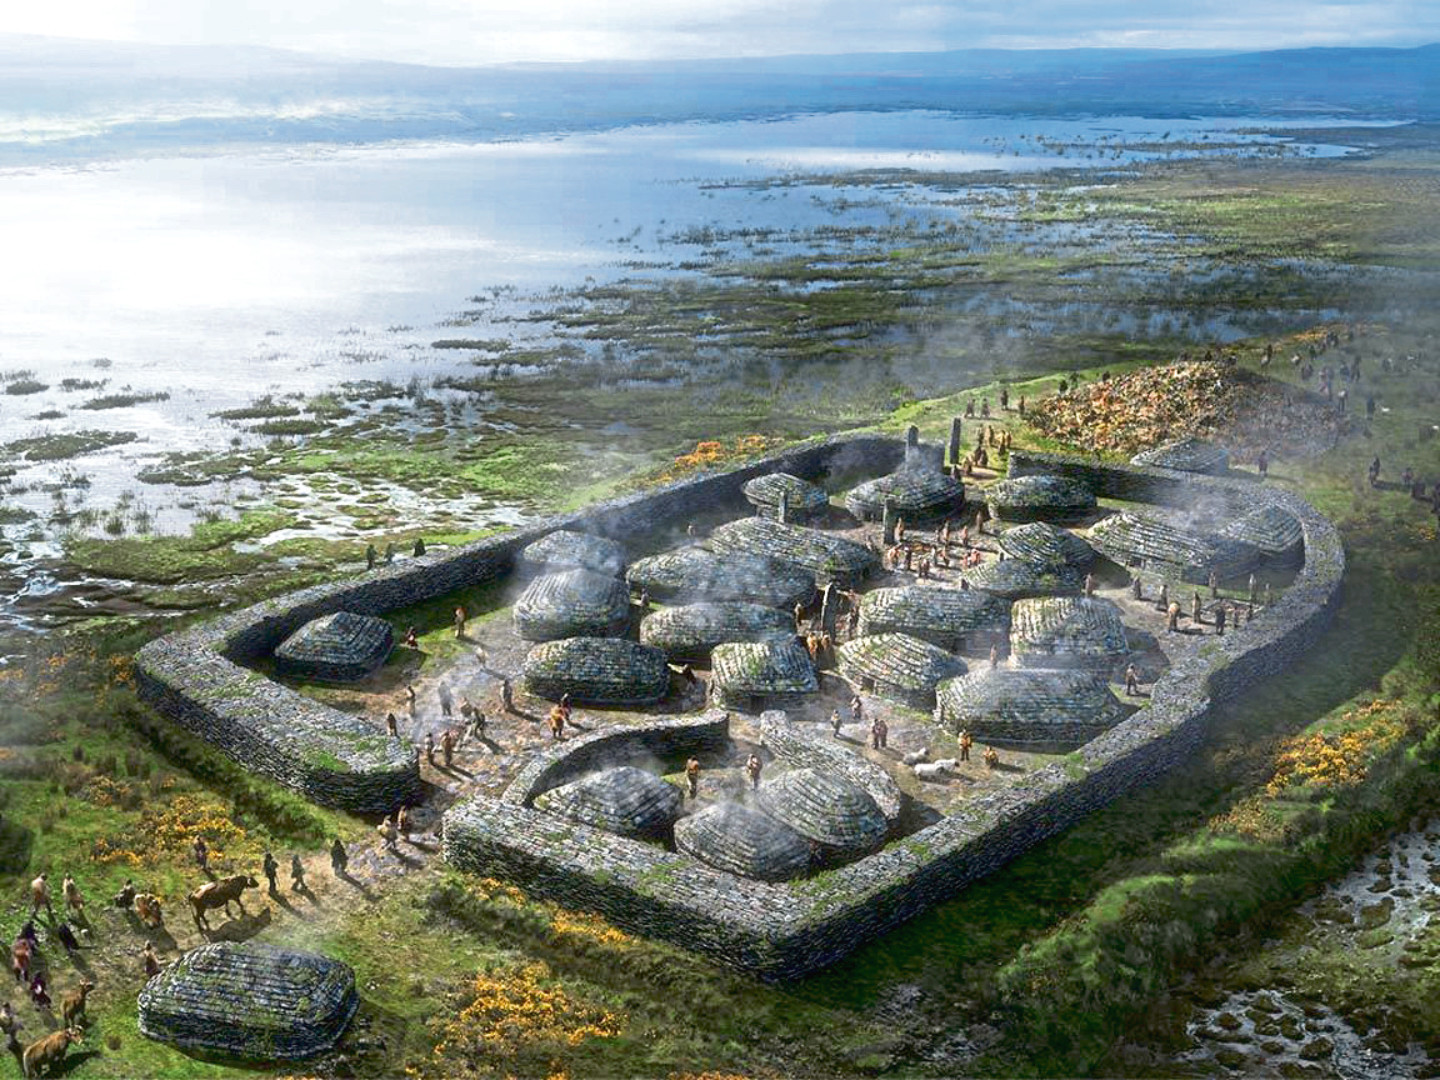 An artist's impression of how life would have looked at the Orkney site.